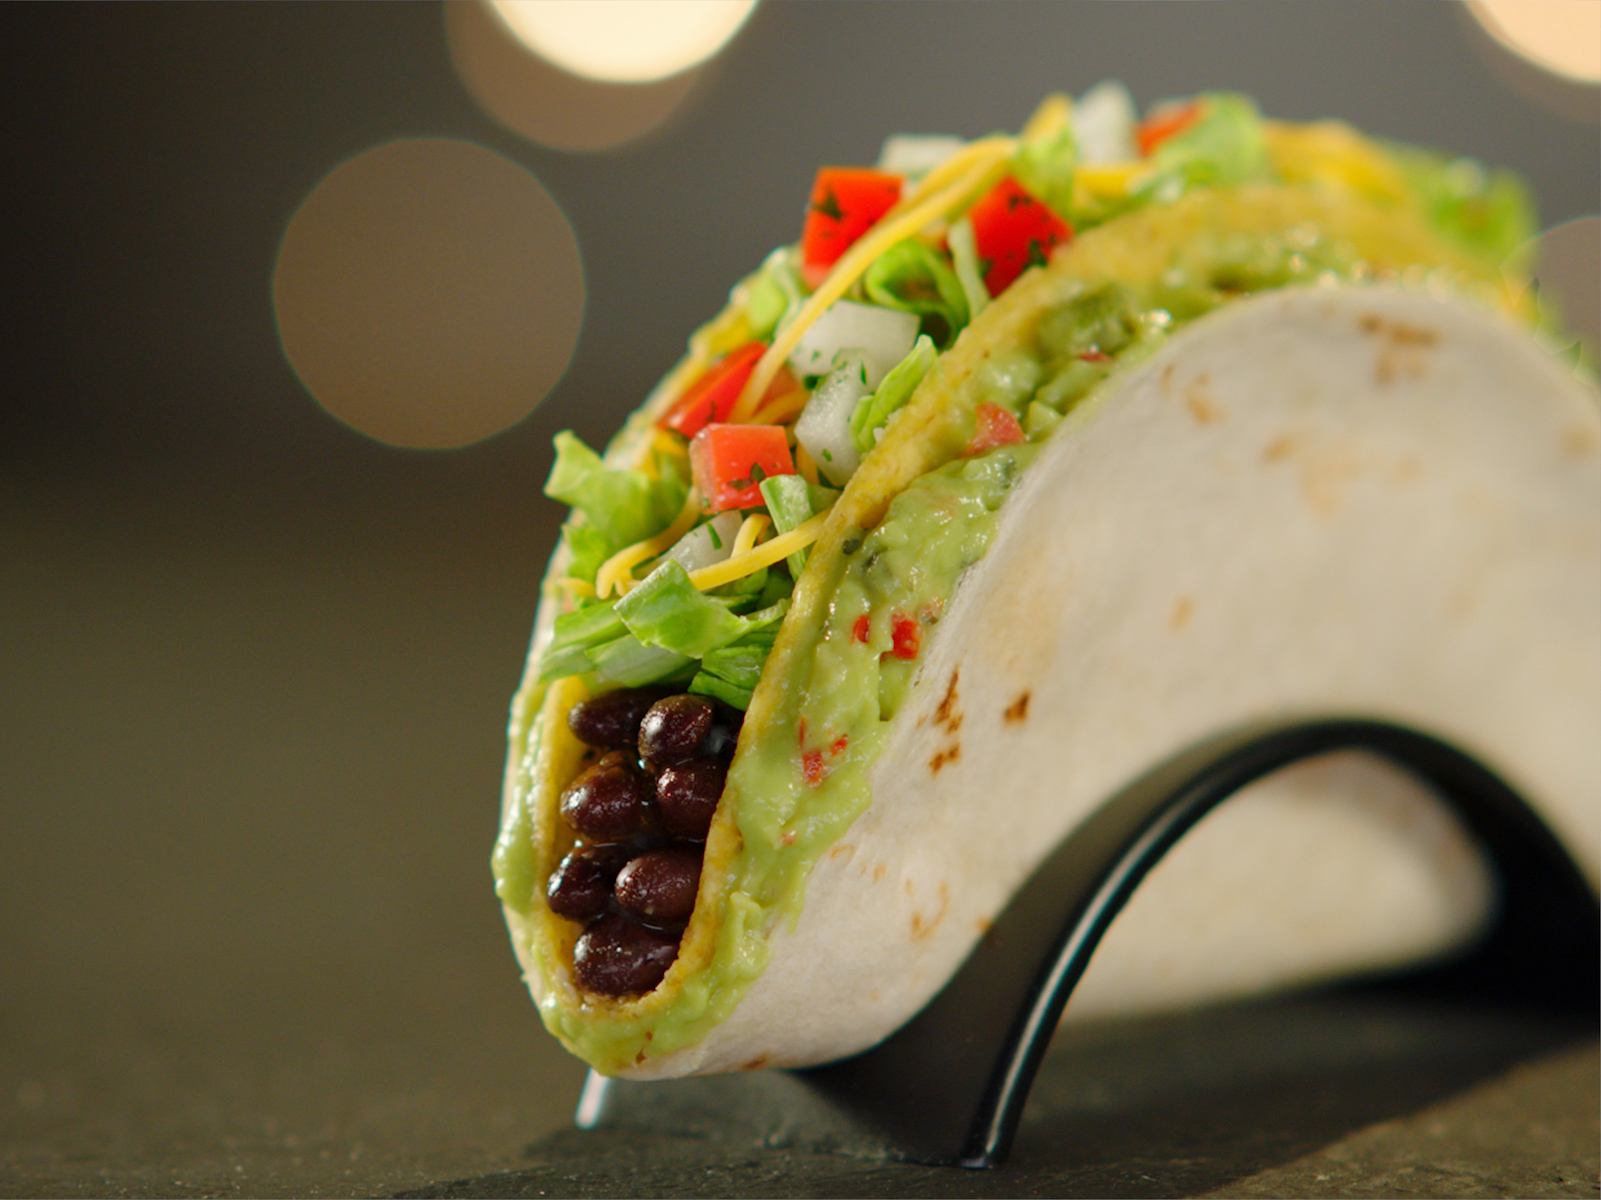 Taco Bell Will Test a Dedicated Vegetarian and Vegan Menu This Year